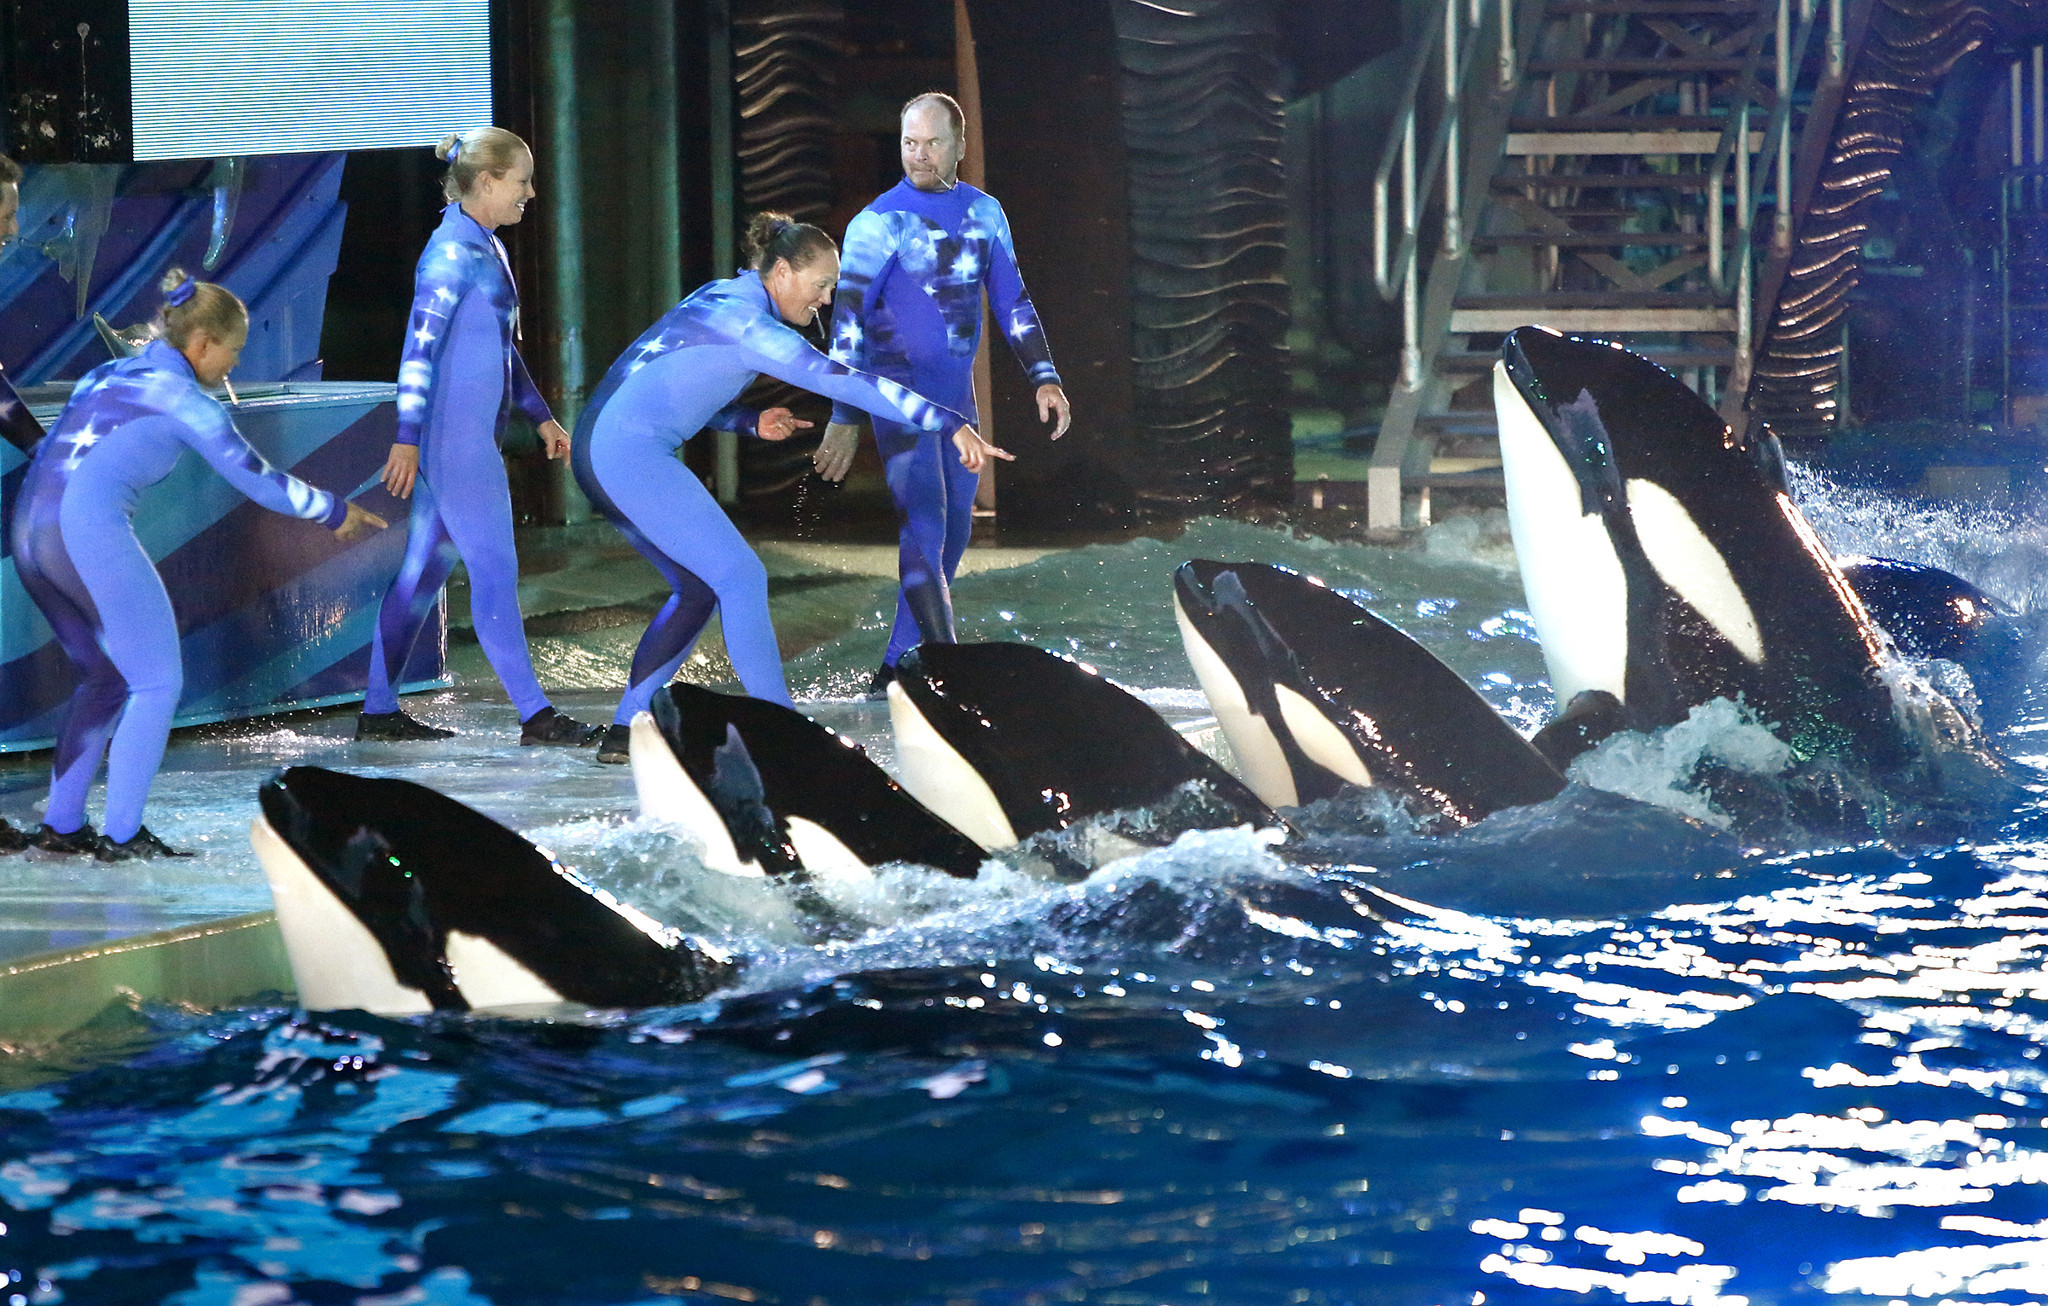 SeaWorld loses bid to put trainers back in water for killer-whale shows